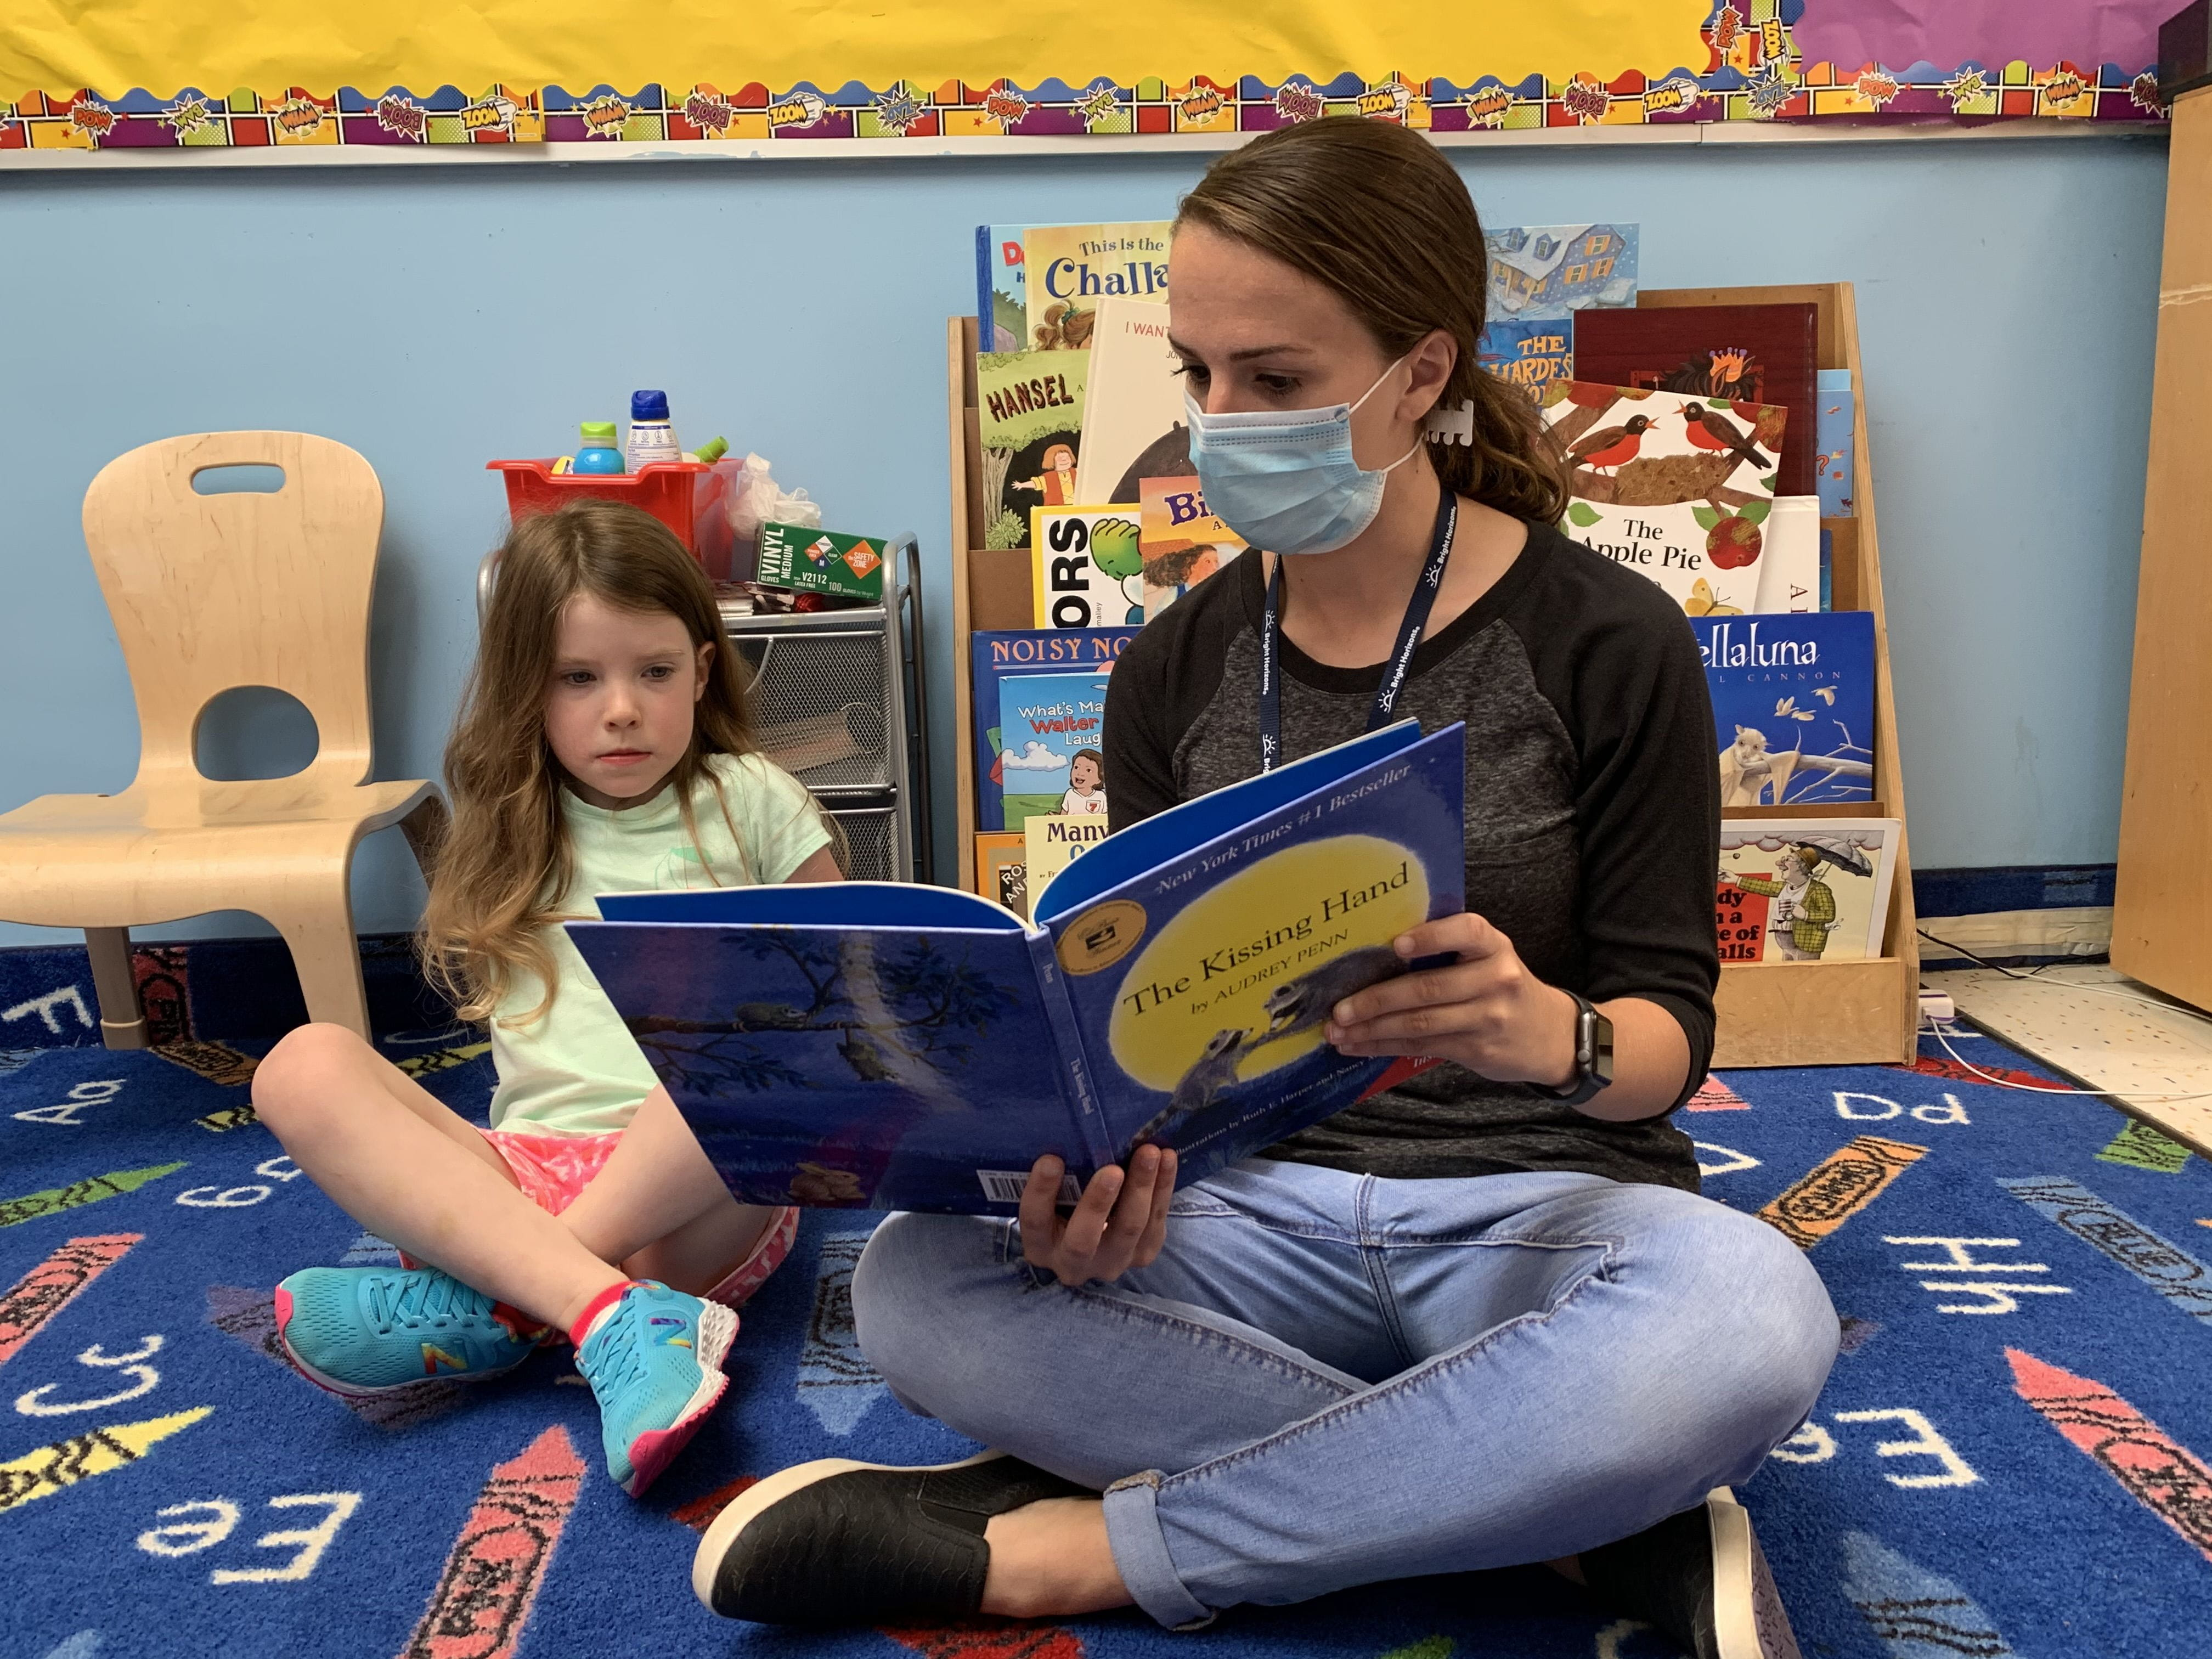 A teacher in a mask reads to a young girl sitting on the floor.